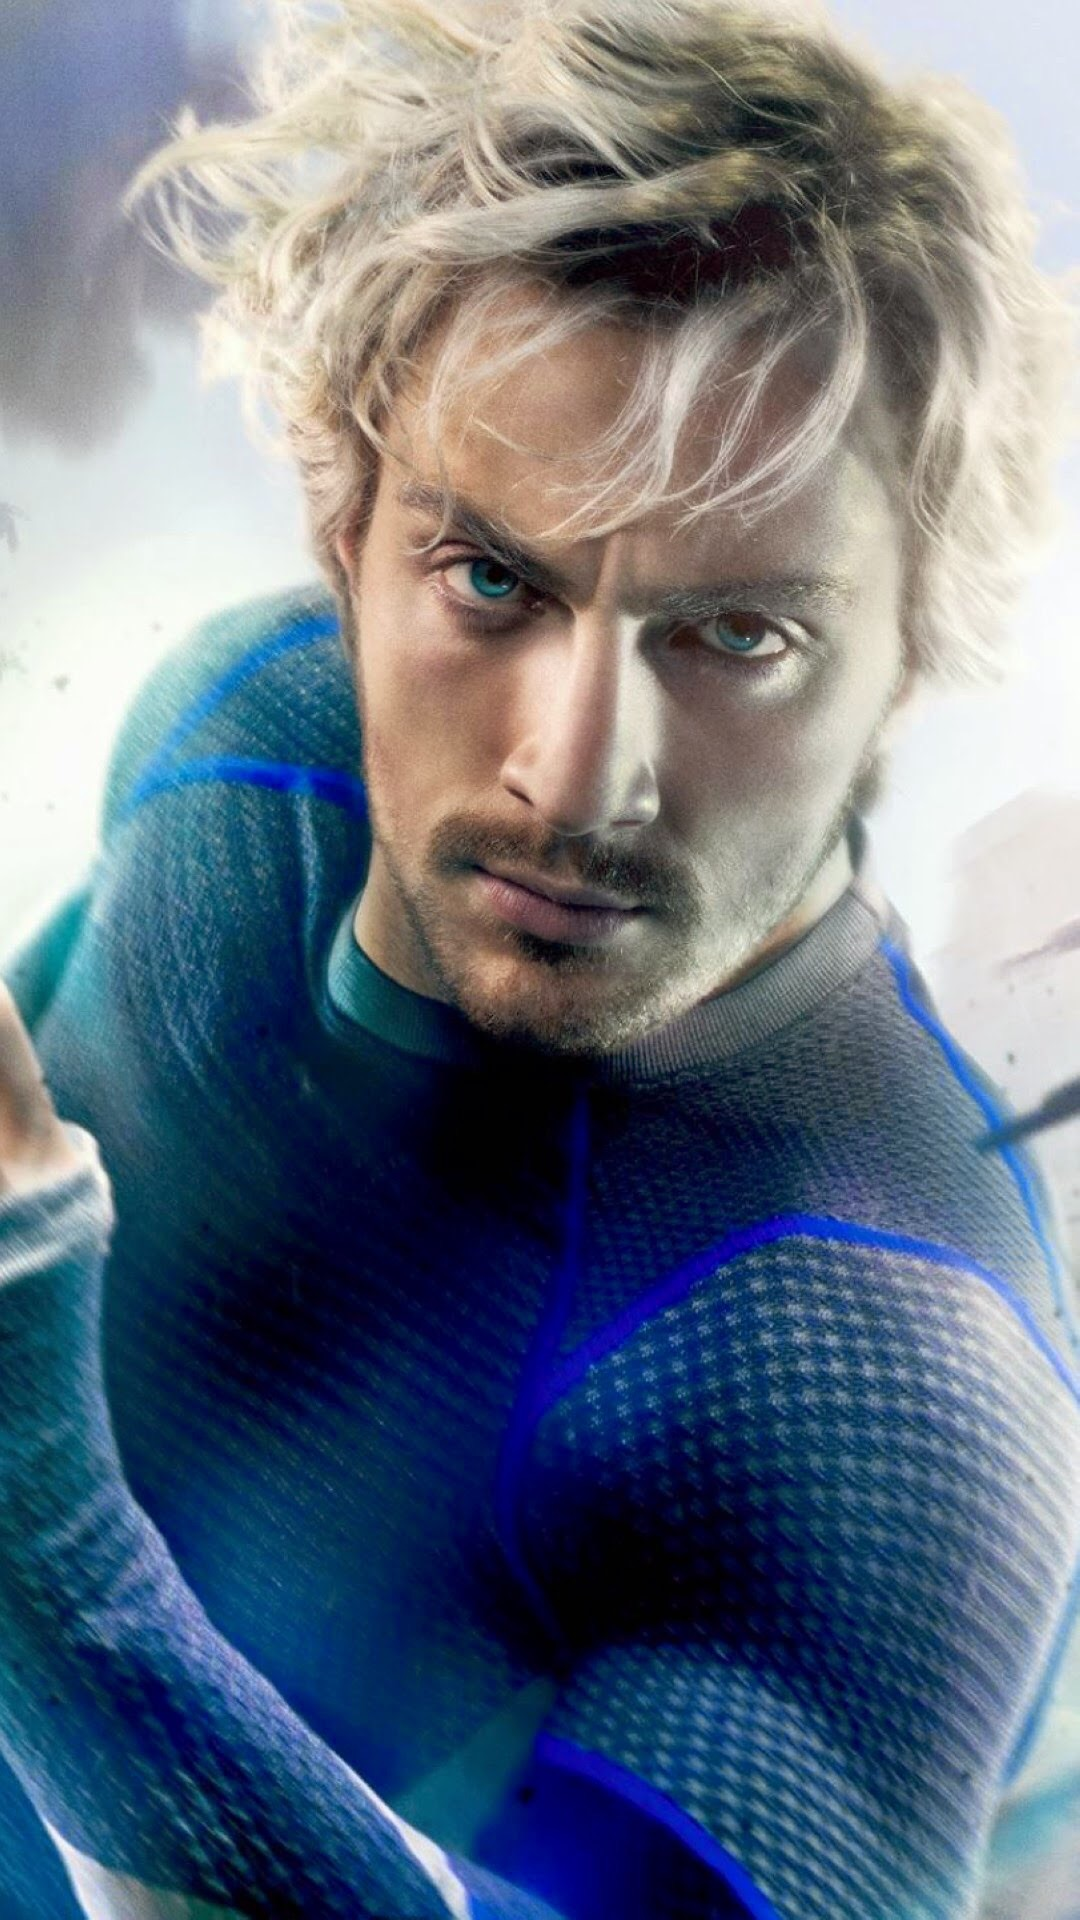 Download Quicksilver - Avengers: Age of Ultron 1080 x 1920 Wallpapers - 4453694 - superhero hero marvel ageofultron avengers | mobile9